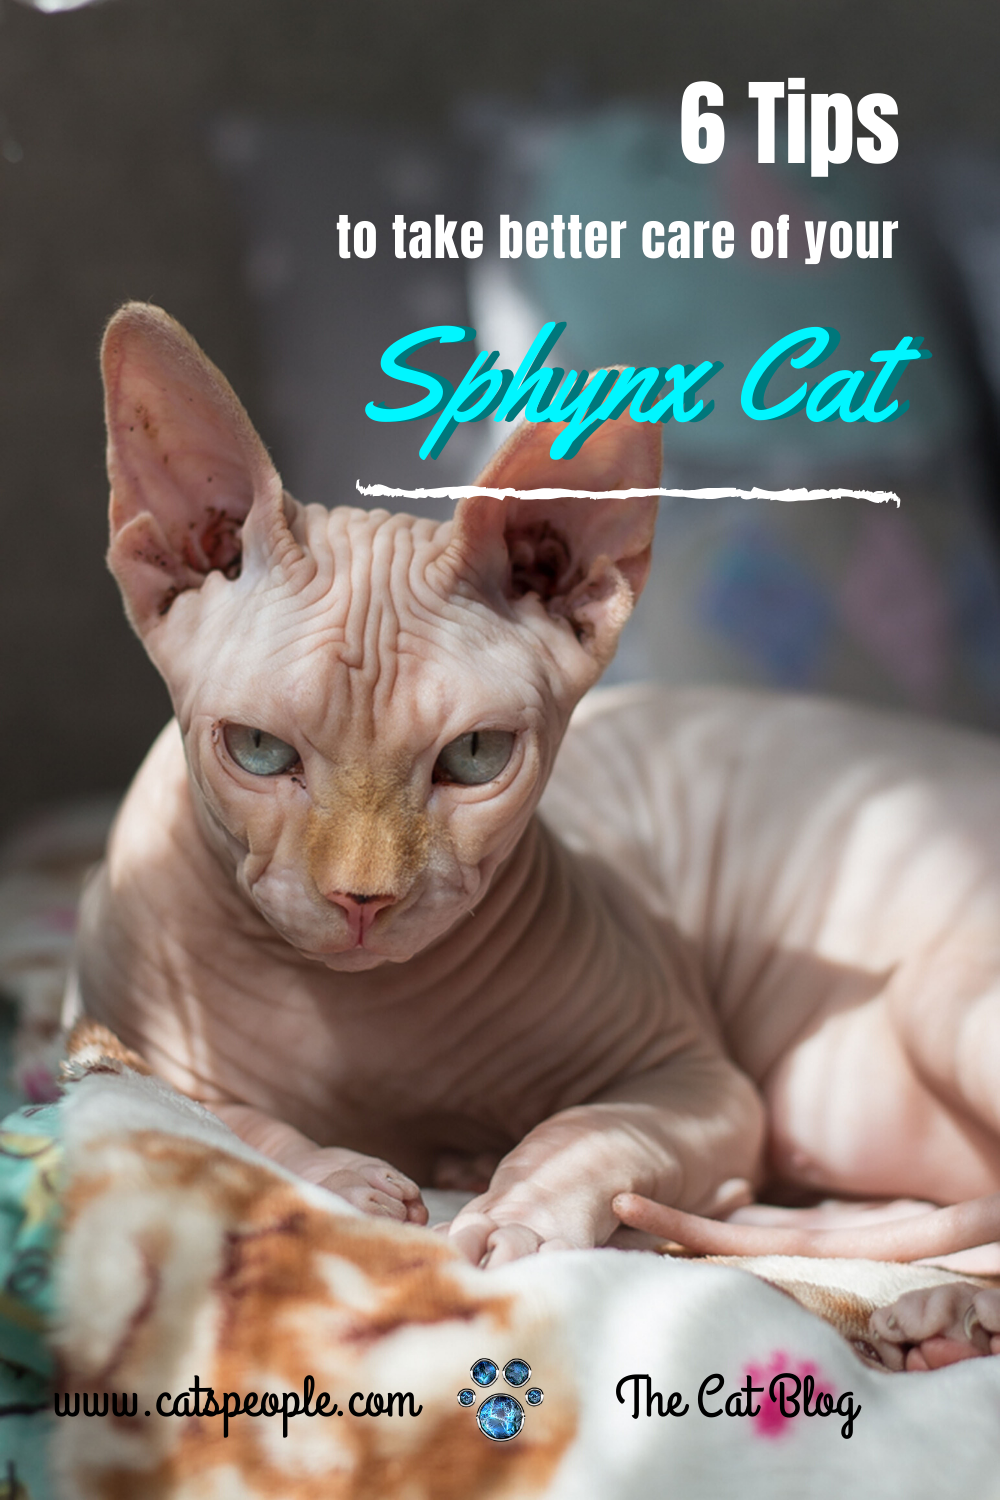 Pin by Cats In Care on sphynx Hairless cat, Sphynx cat